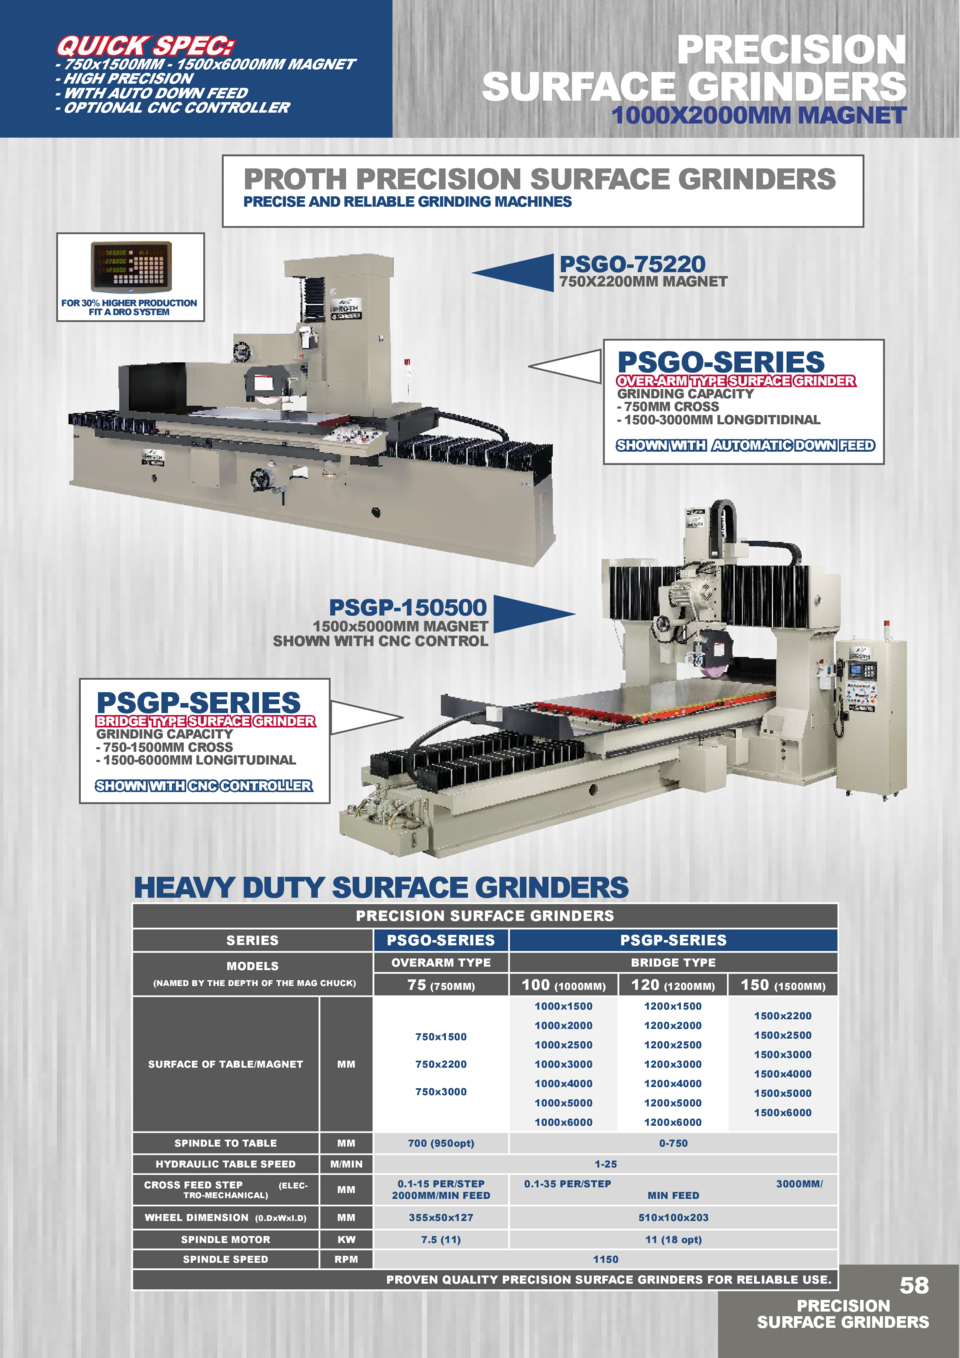 PRECISION SURFACE GRINDERS  QUICK SPEC   - 750x1500MM - 1500x6000MM MAGNET - HIGH PRECISION - WITH AUTO DOWN FEED - OPTION...